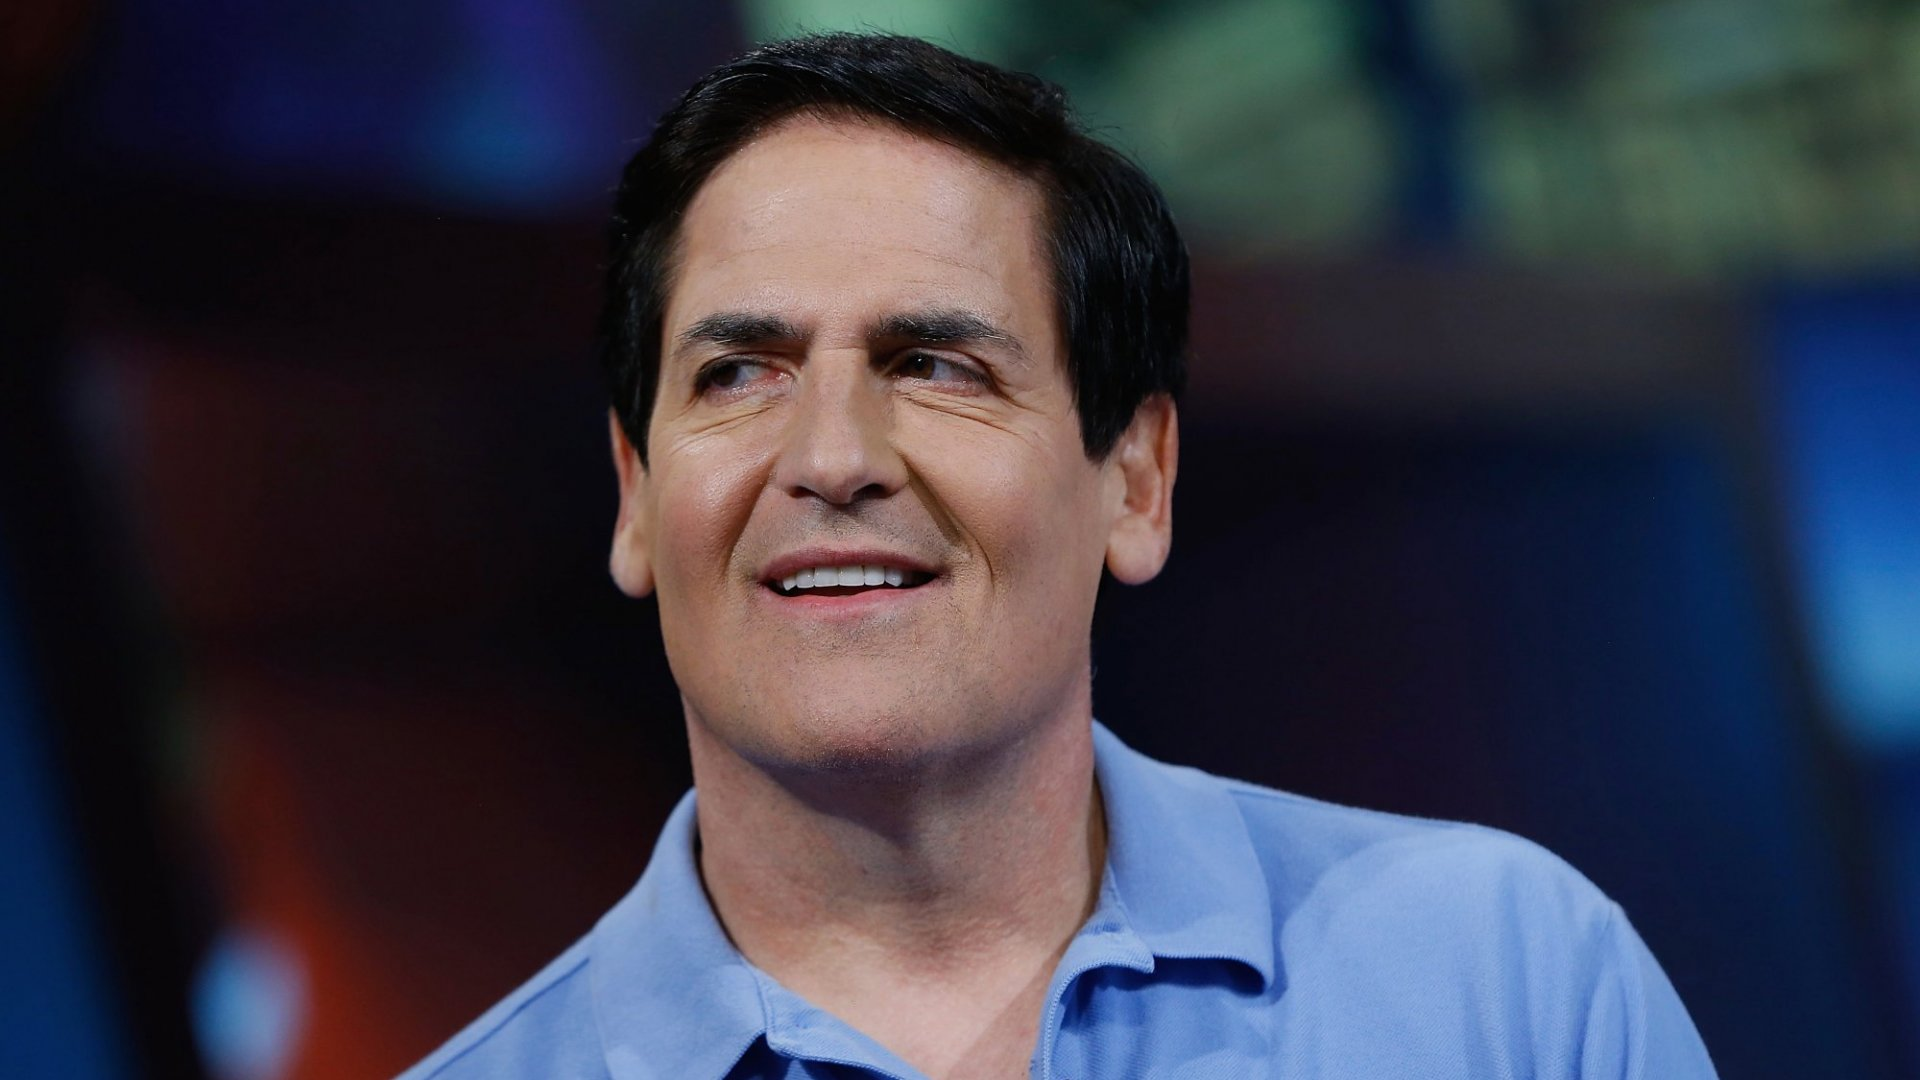 Mark Cuban Just Revealed This Simply Brilliant Way to Get Past a Major Blunder